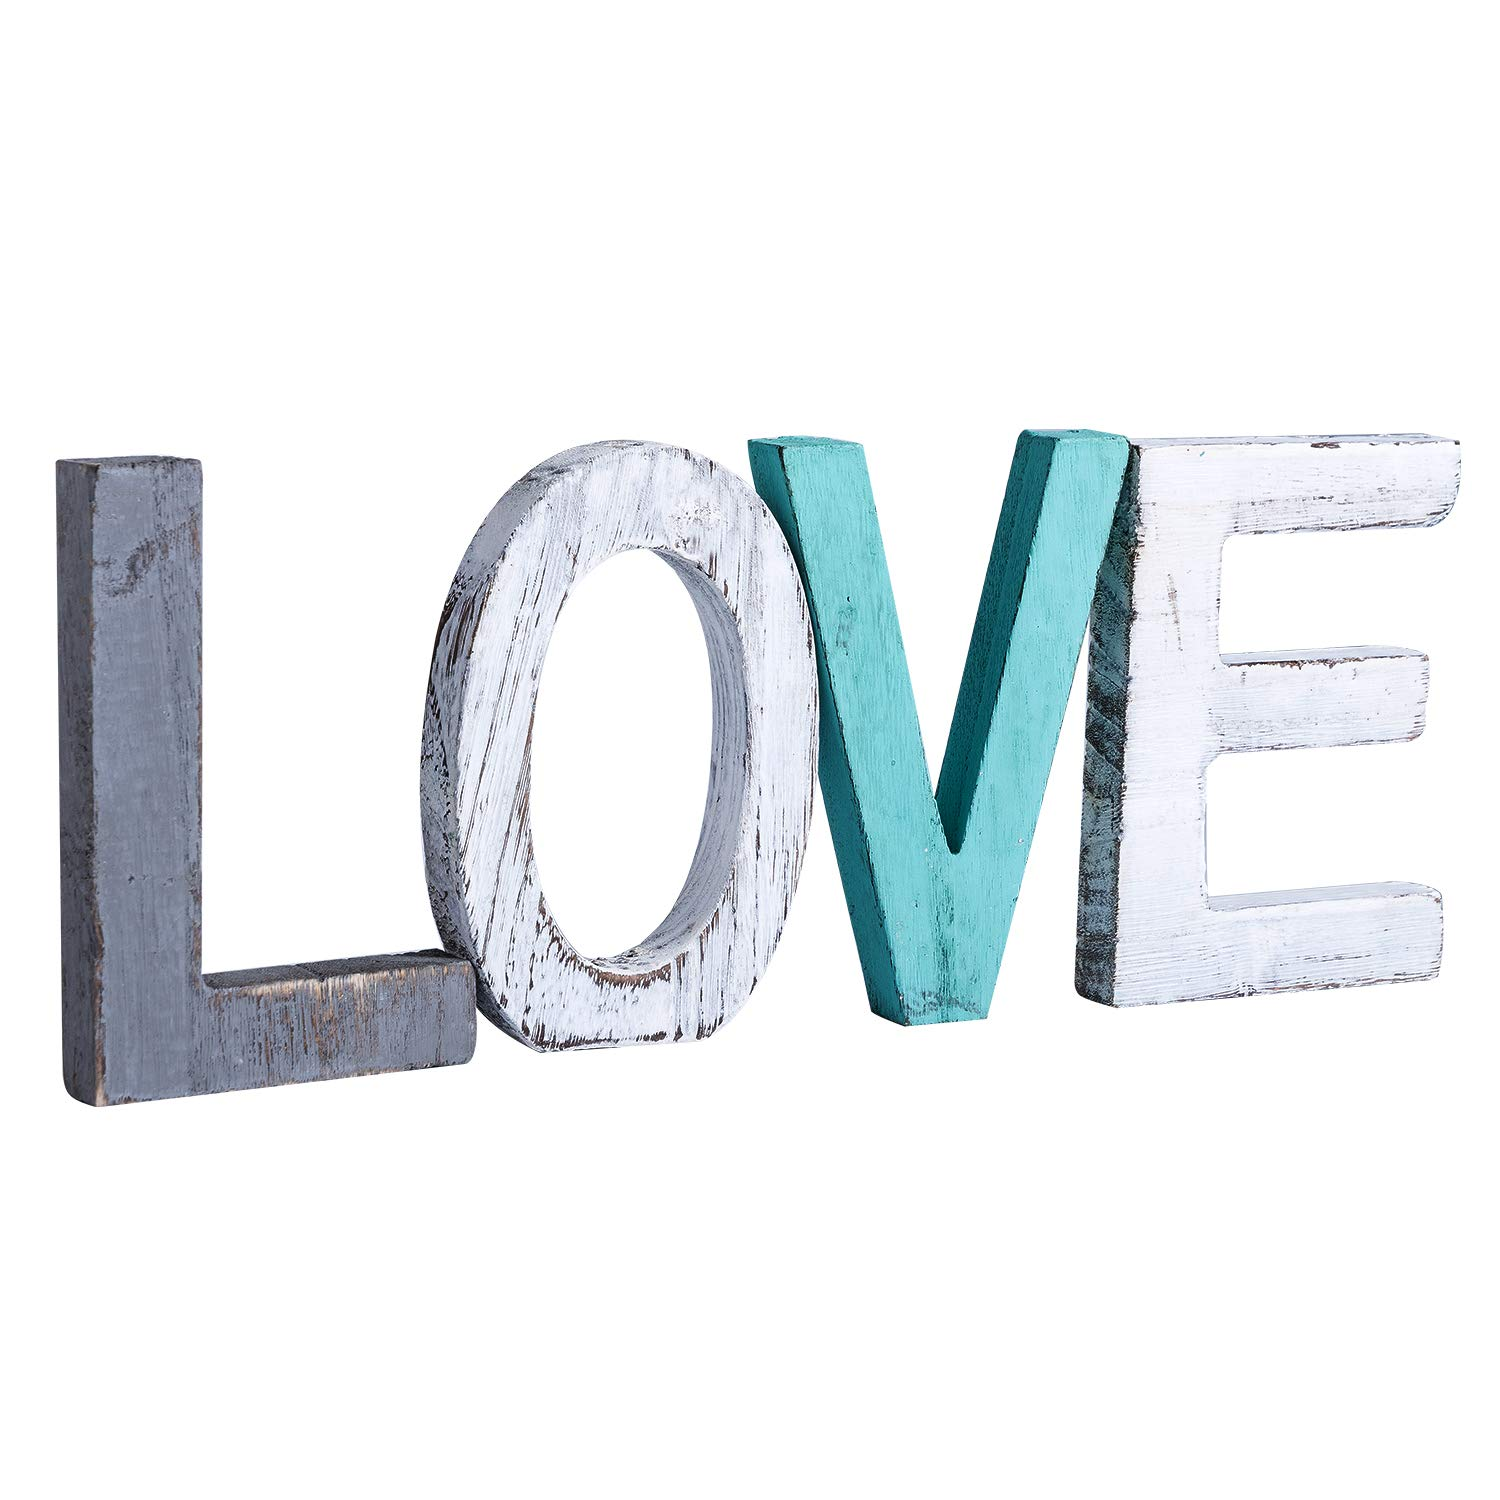 Y&ME Rustic Wood Love Sign, Decorative Wooden Block Word Signs, Freestanding Wooden Letters, Rustic Love Sign for Home Decor, Wedding Anniversary, Birthday,Christmas Sign Gift and More (Love Sign)